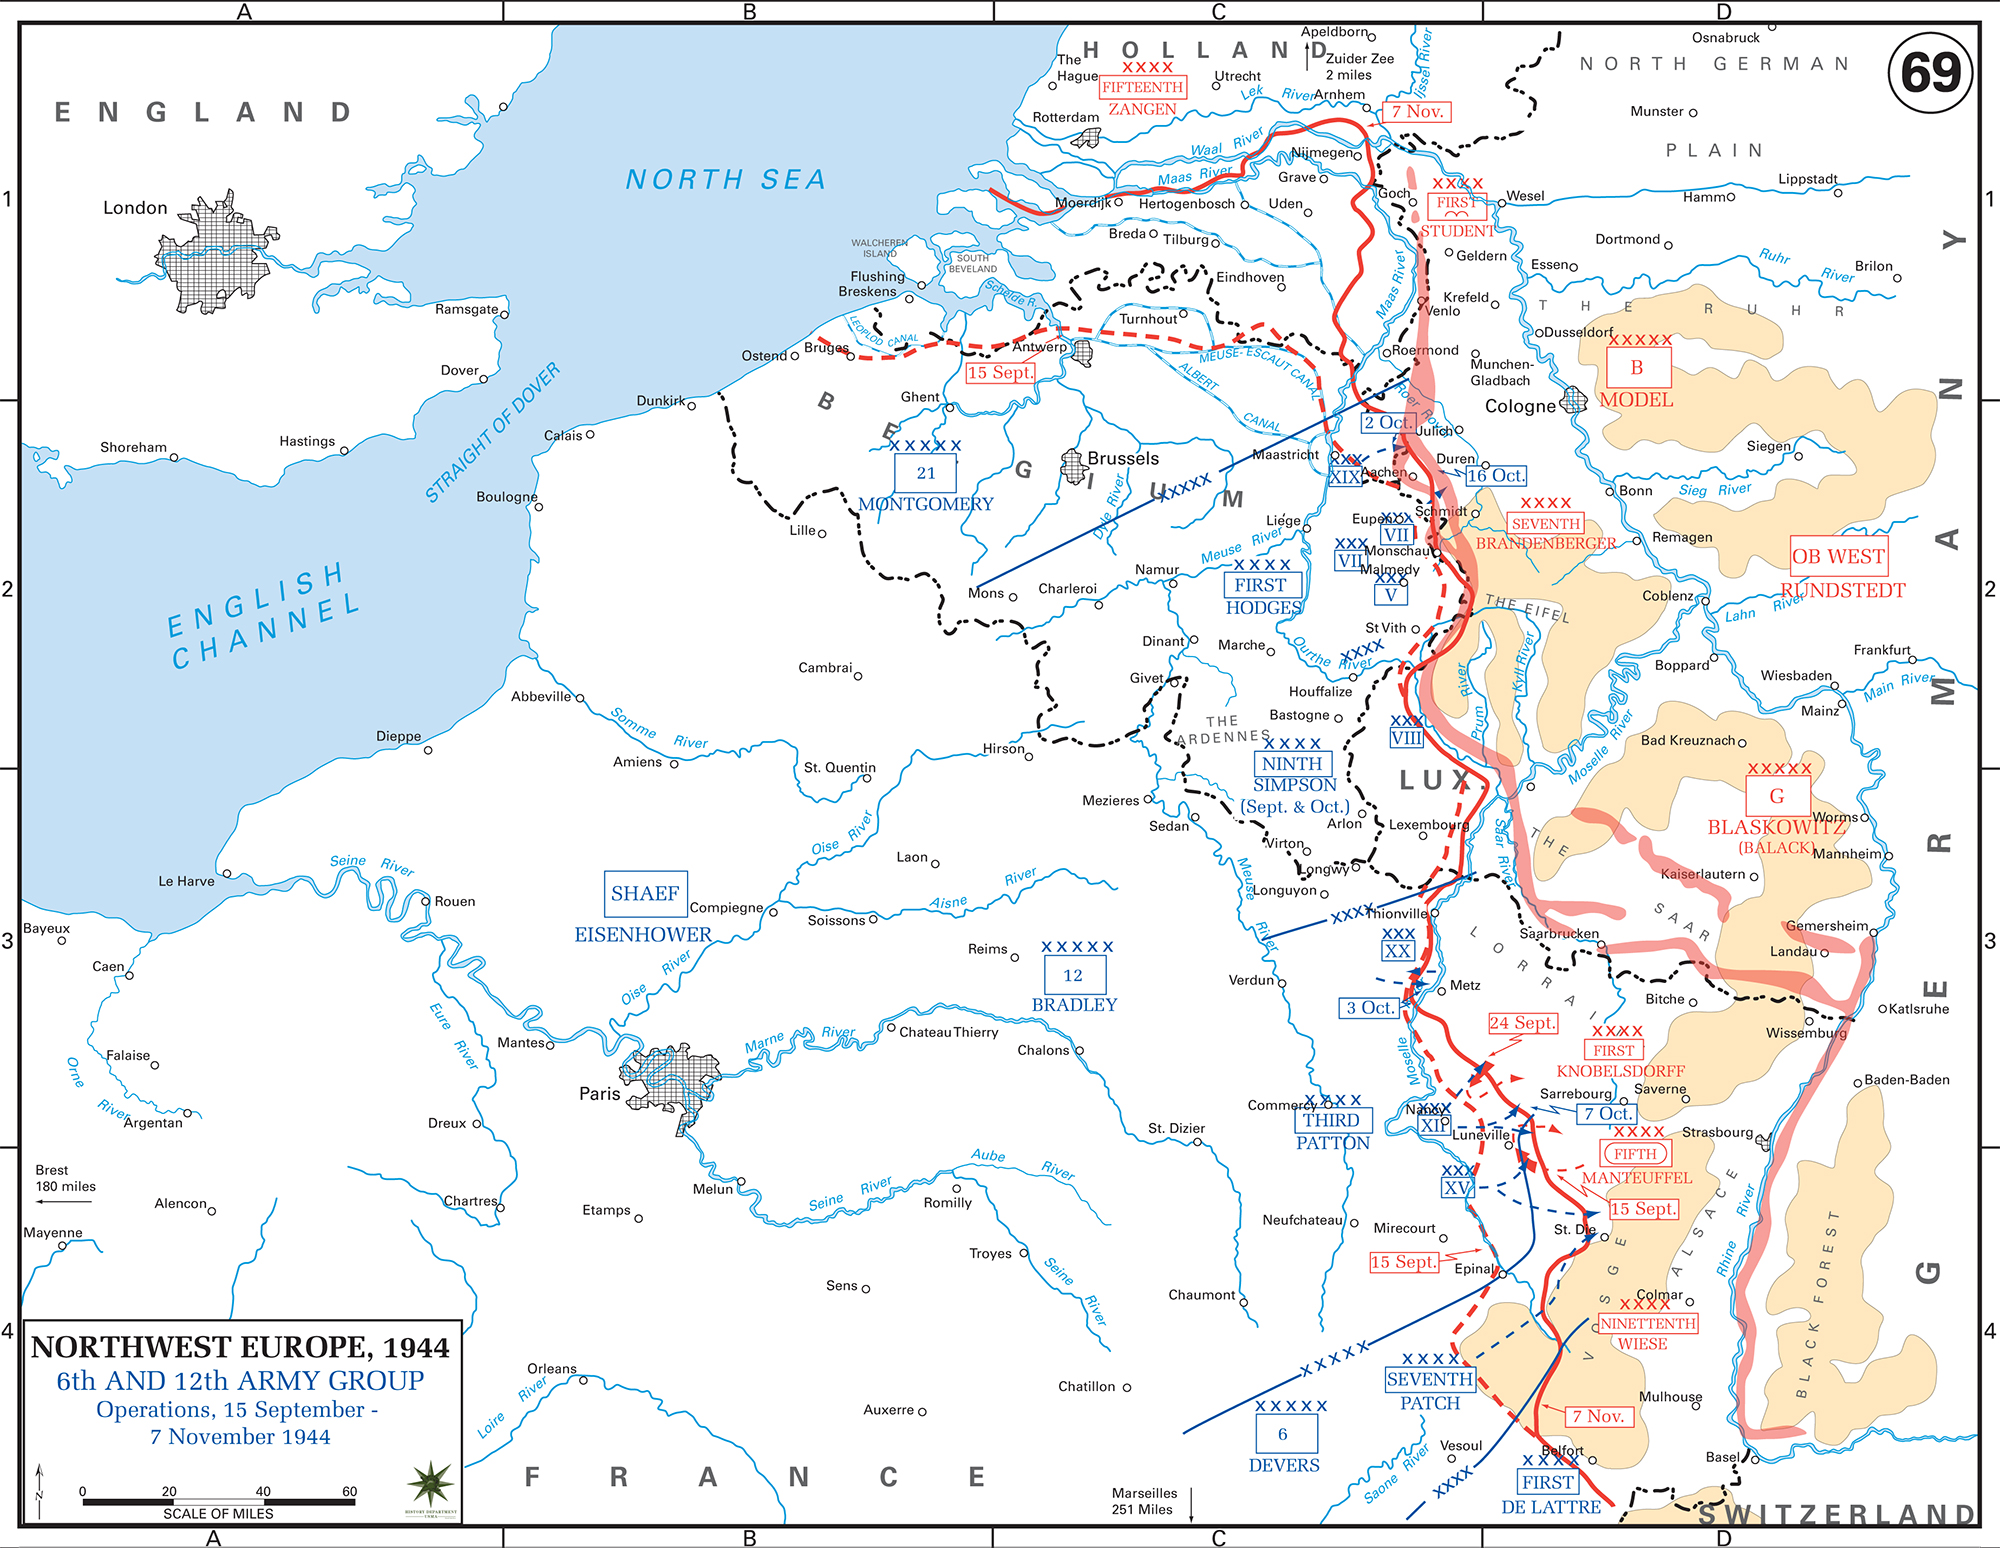 Map of WWII: Western Europe Sept 15 - Nov 7, 1944